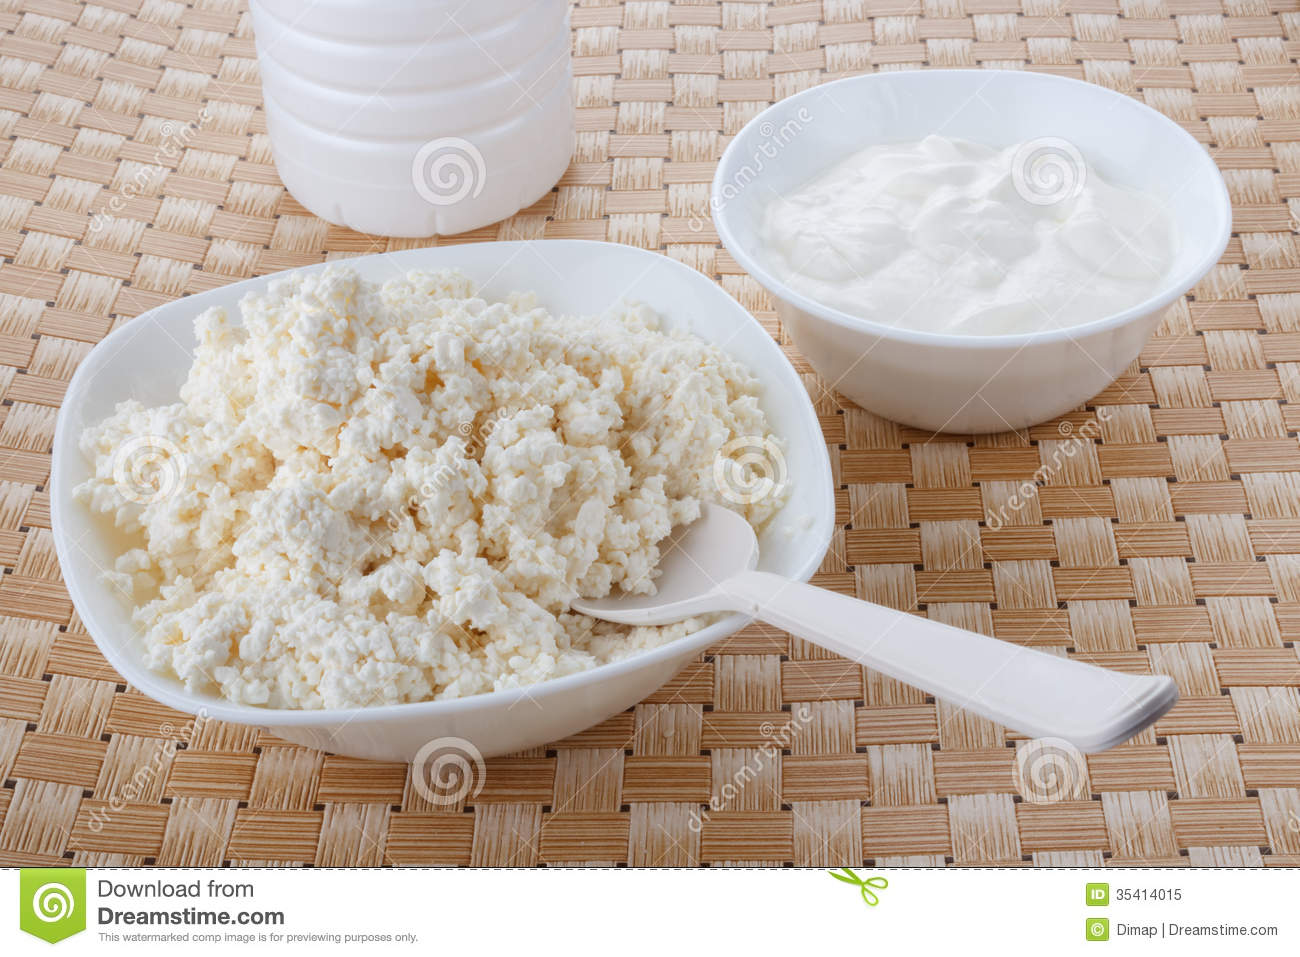 Marvelous Cottage Cheese And Sour Cream